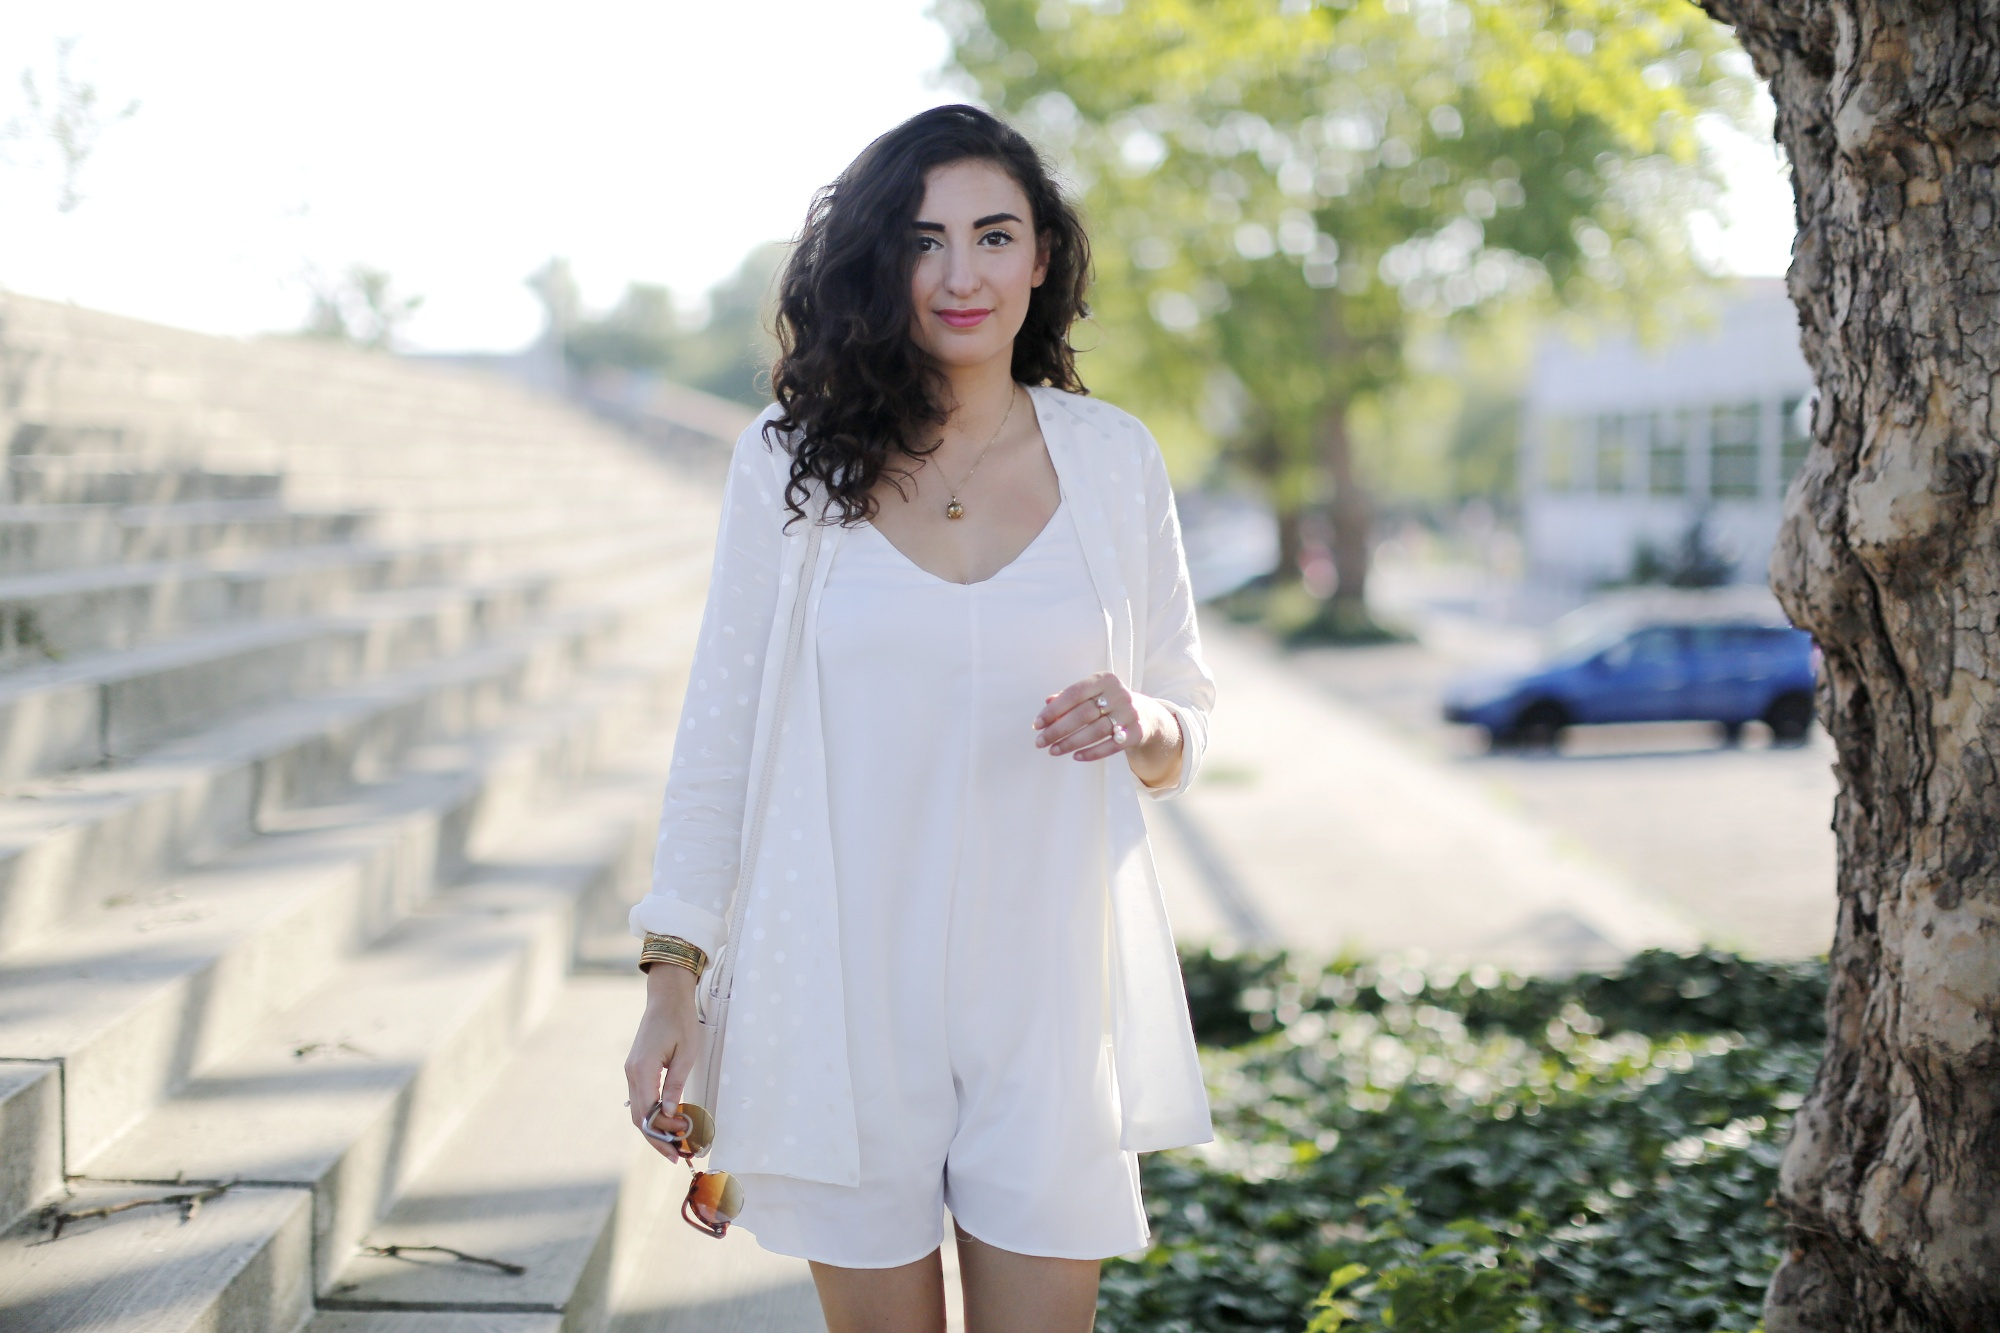 b8365298b6a6 All White Outfit wit Jumpsuit - Fashion Blog Berlin